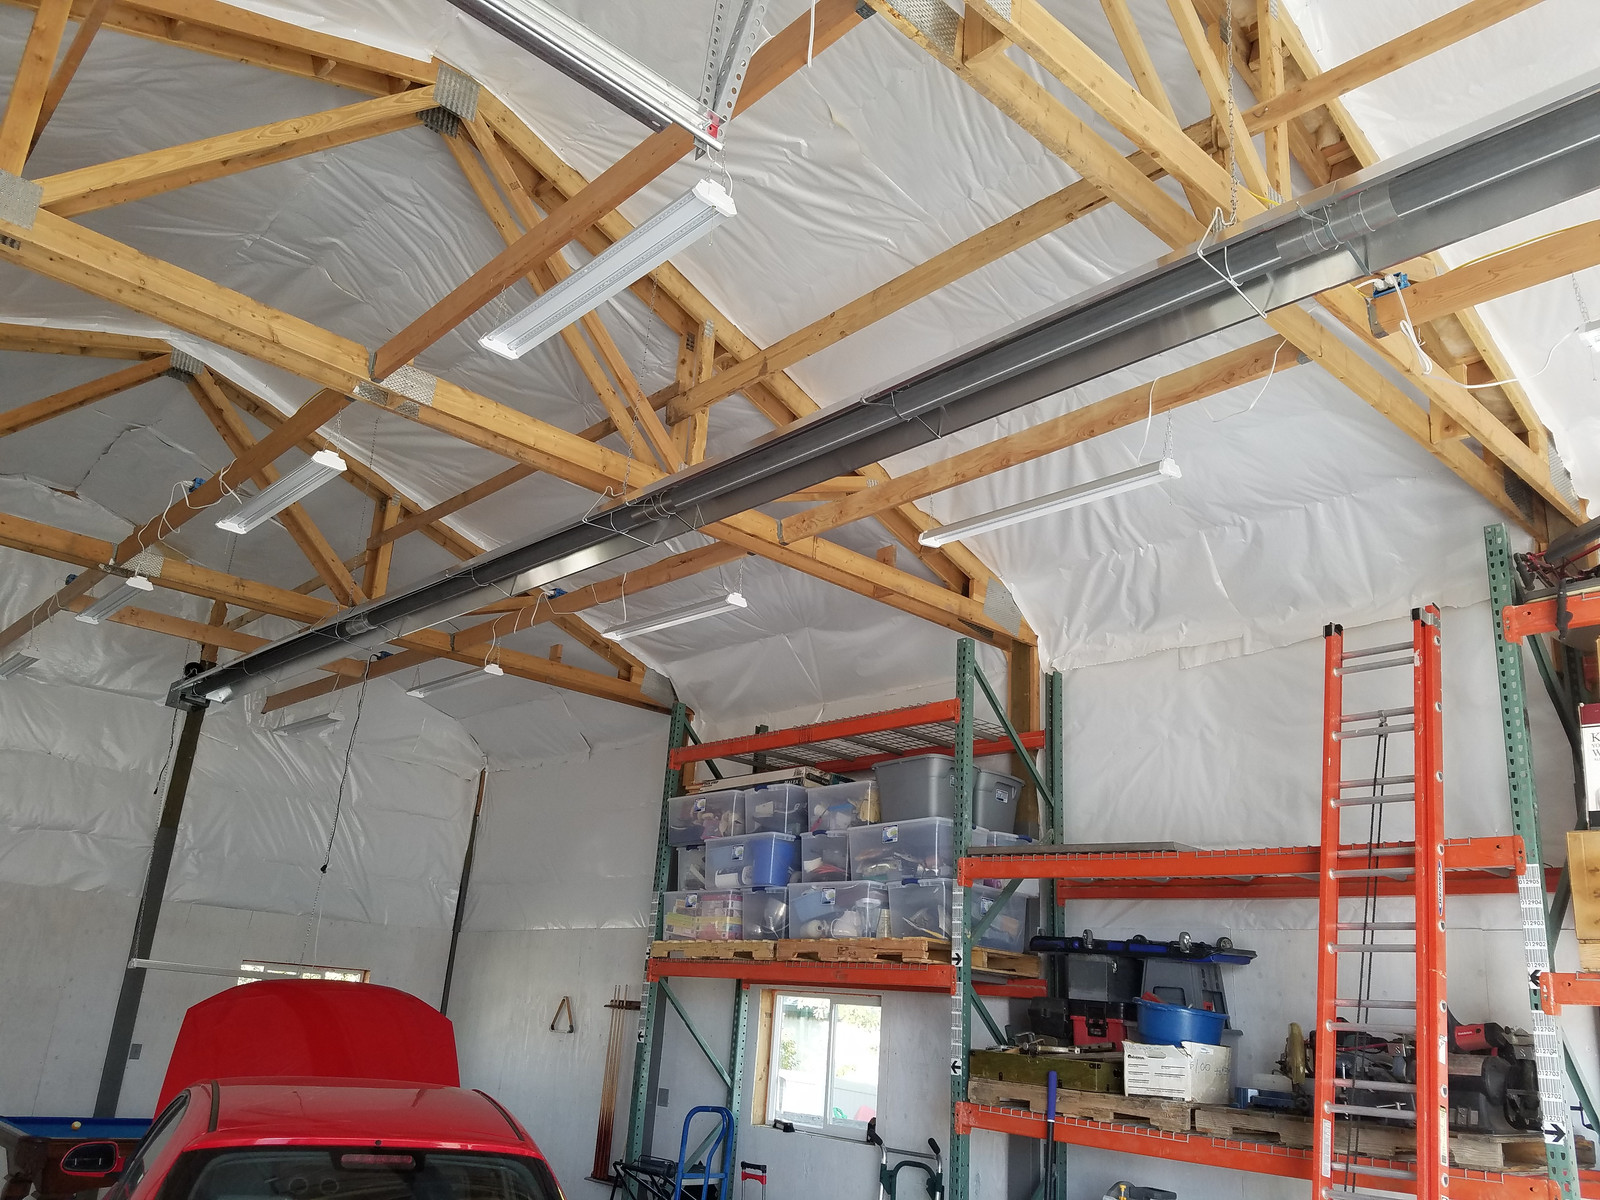 Residential Garage Heaters Utah Superior Tube Heaterscom Radiant Heater Wiring Diagram Infrared In A Detached And Workshop